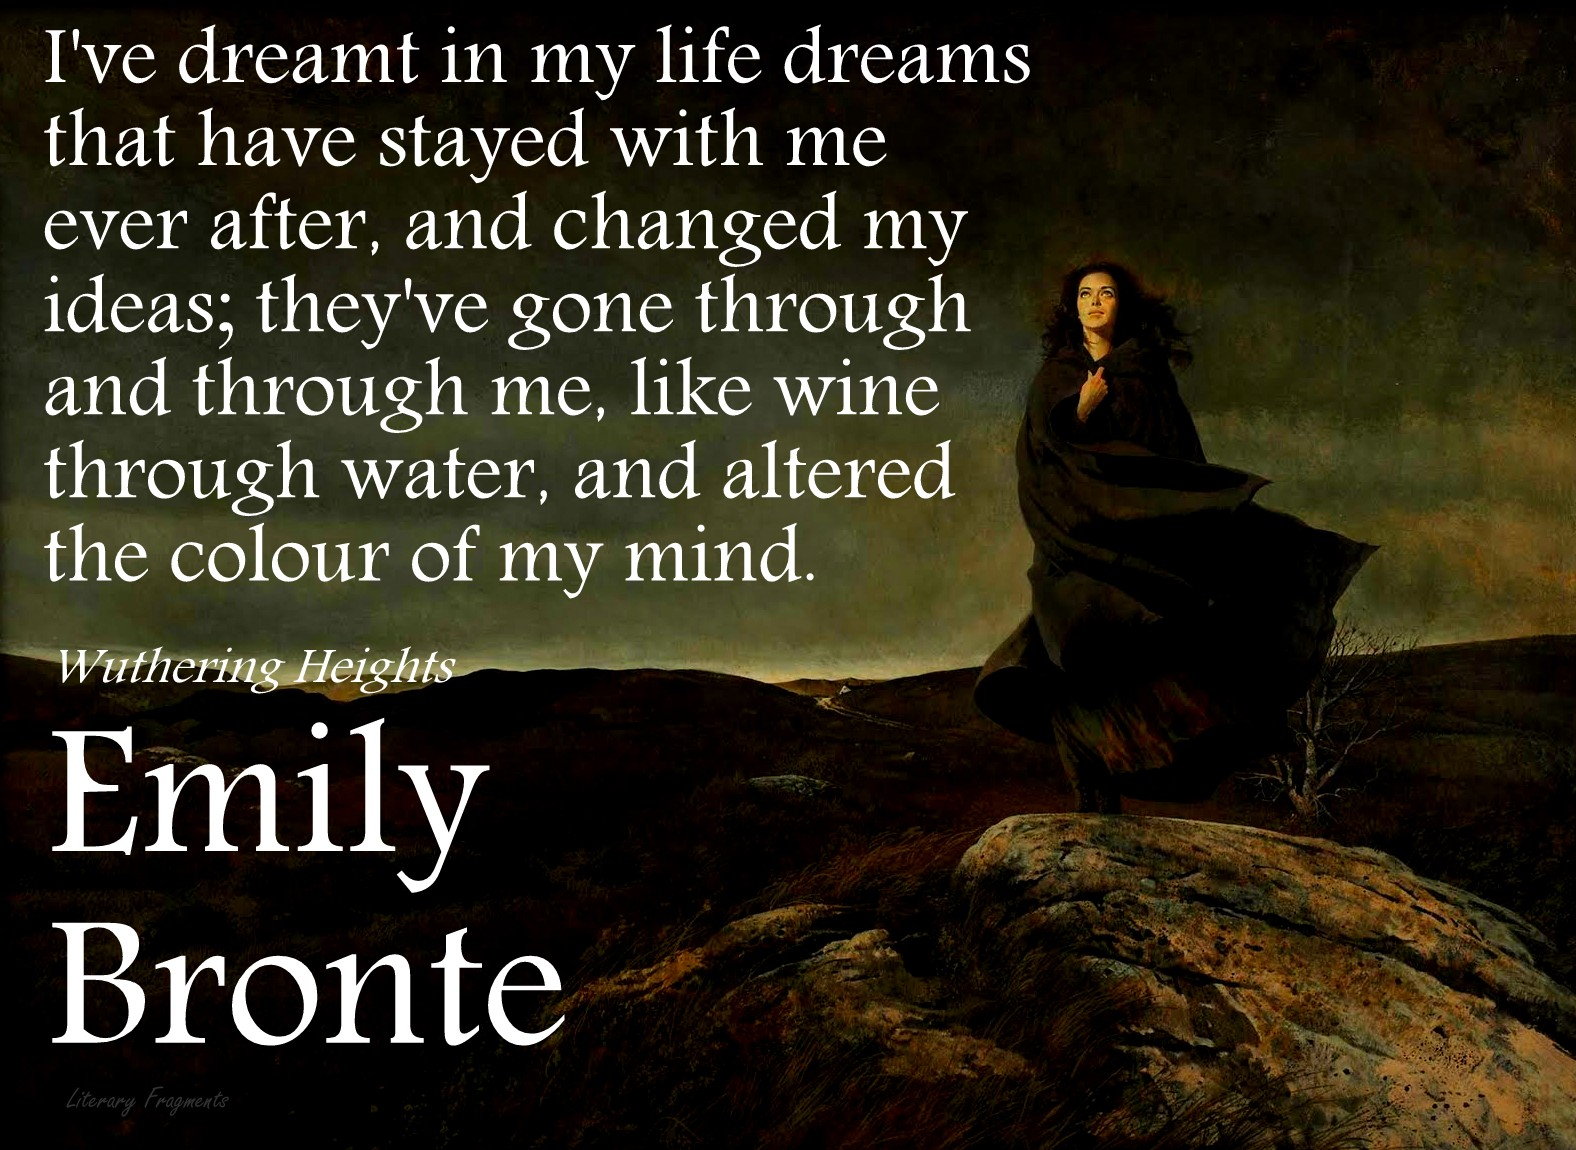 wuthering heights essay crystals g png hark a vagrant emily bront  emily bront euml s wuthering heights book review by viktorija wuthering heights 6 wuthering heights critical essays